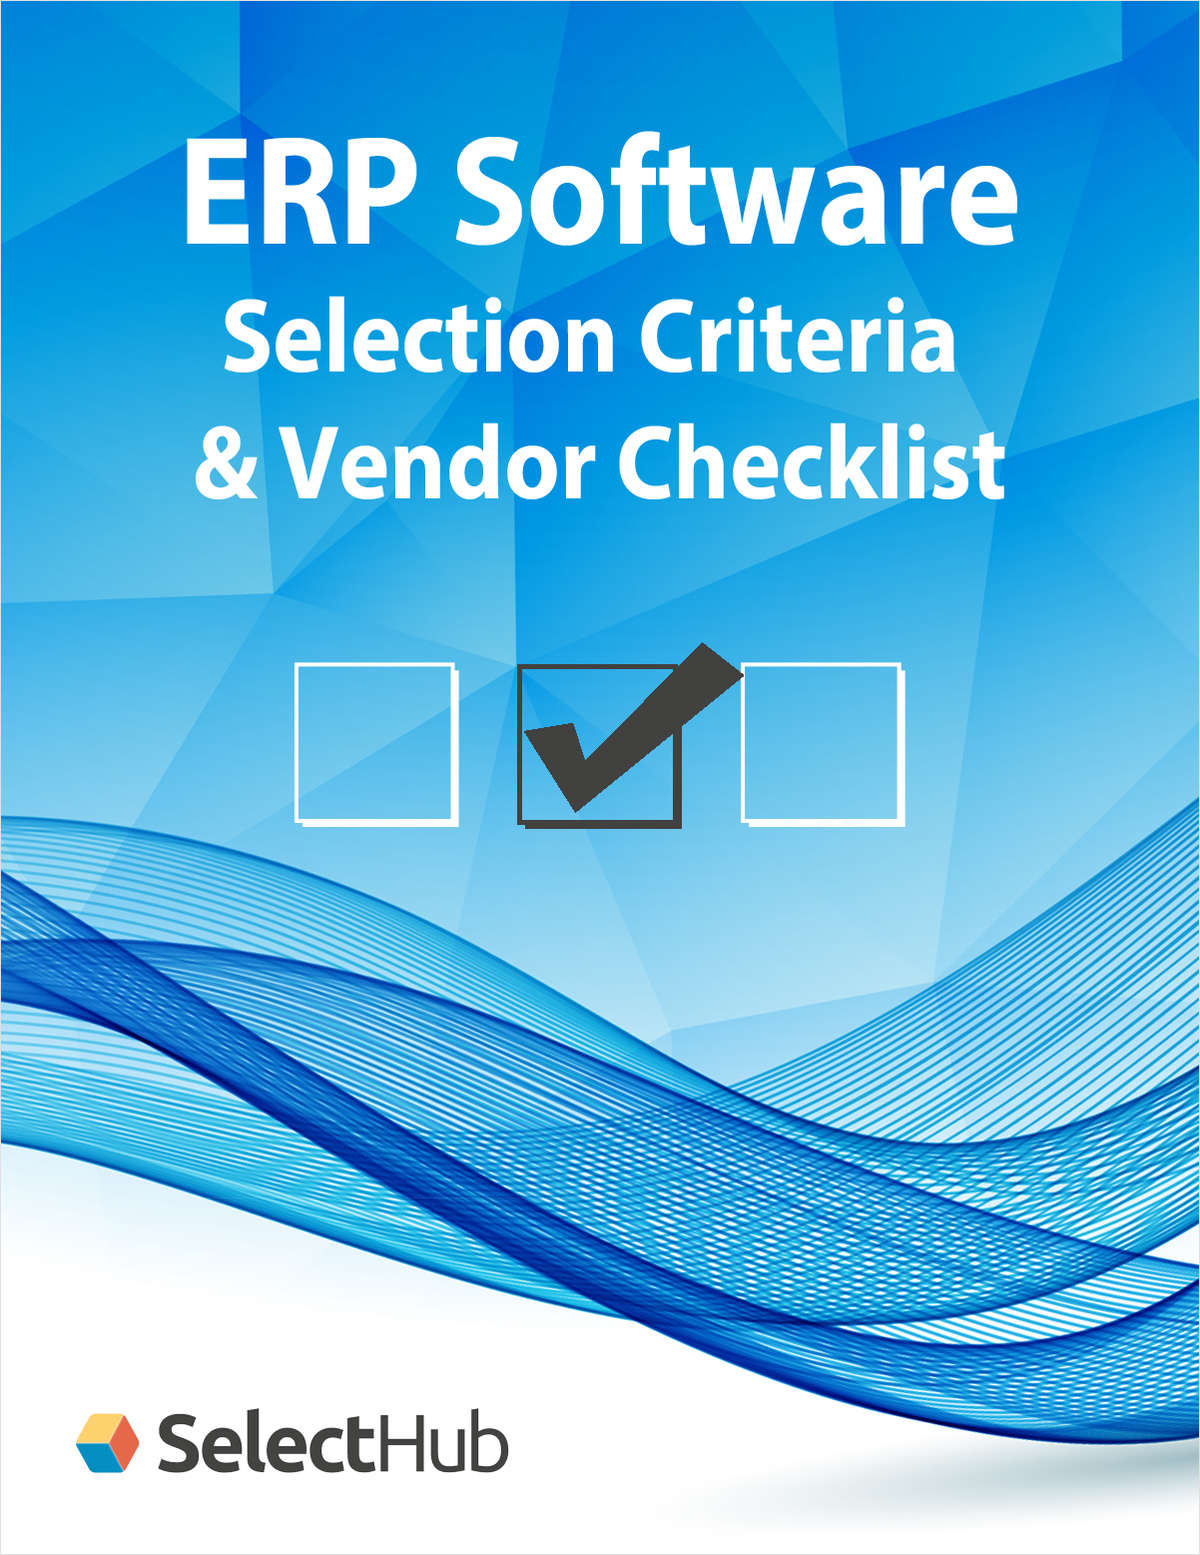 Top ERP Software Selection Criteria & Vendor Checklist